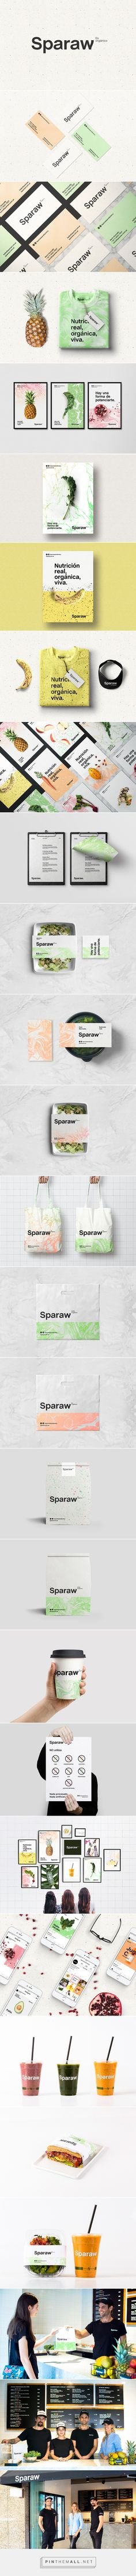 Sparaw Juices and Vegan Food Branding by Bunker3022 | Fivestar Branding Agency – Design and Branding Agency & Curated Inspiration Gallery